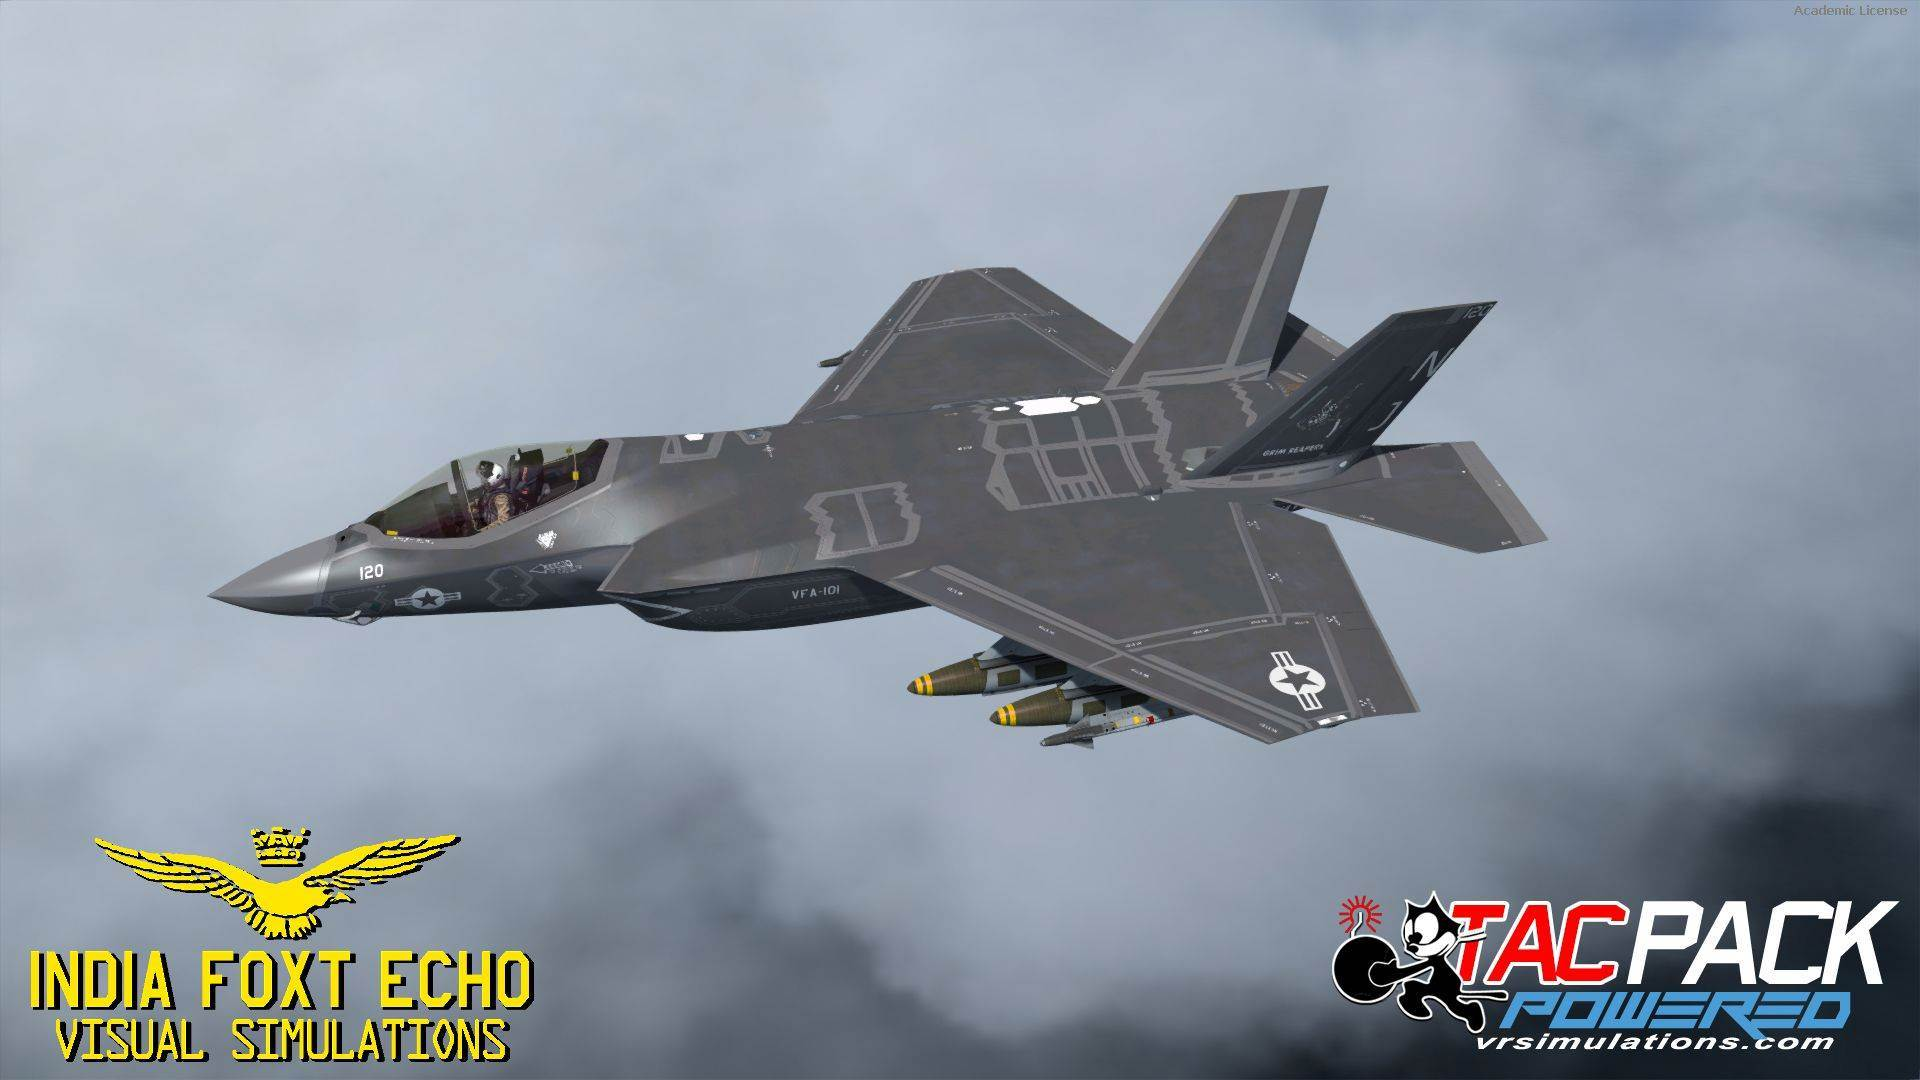 F-35 Lightining II (FSX/P3D)